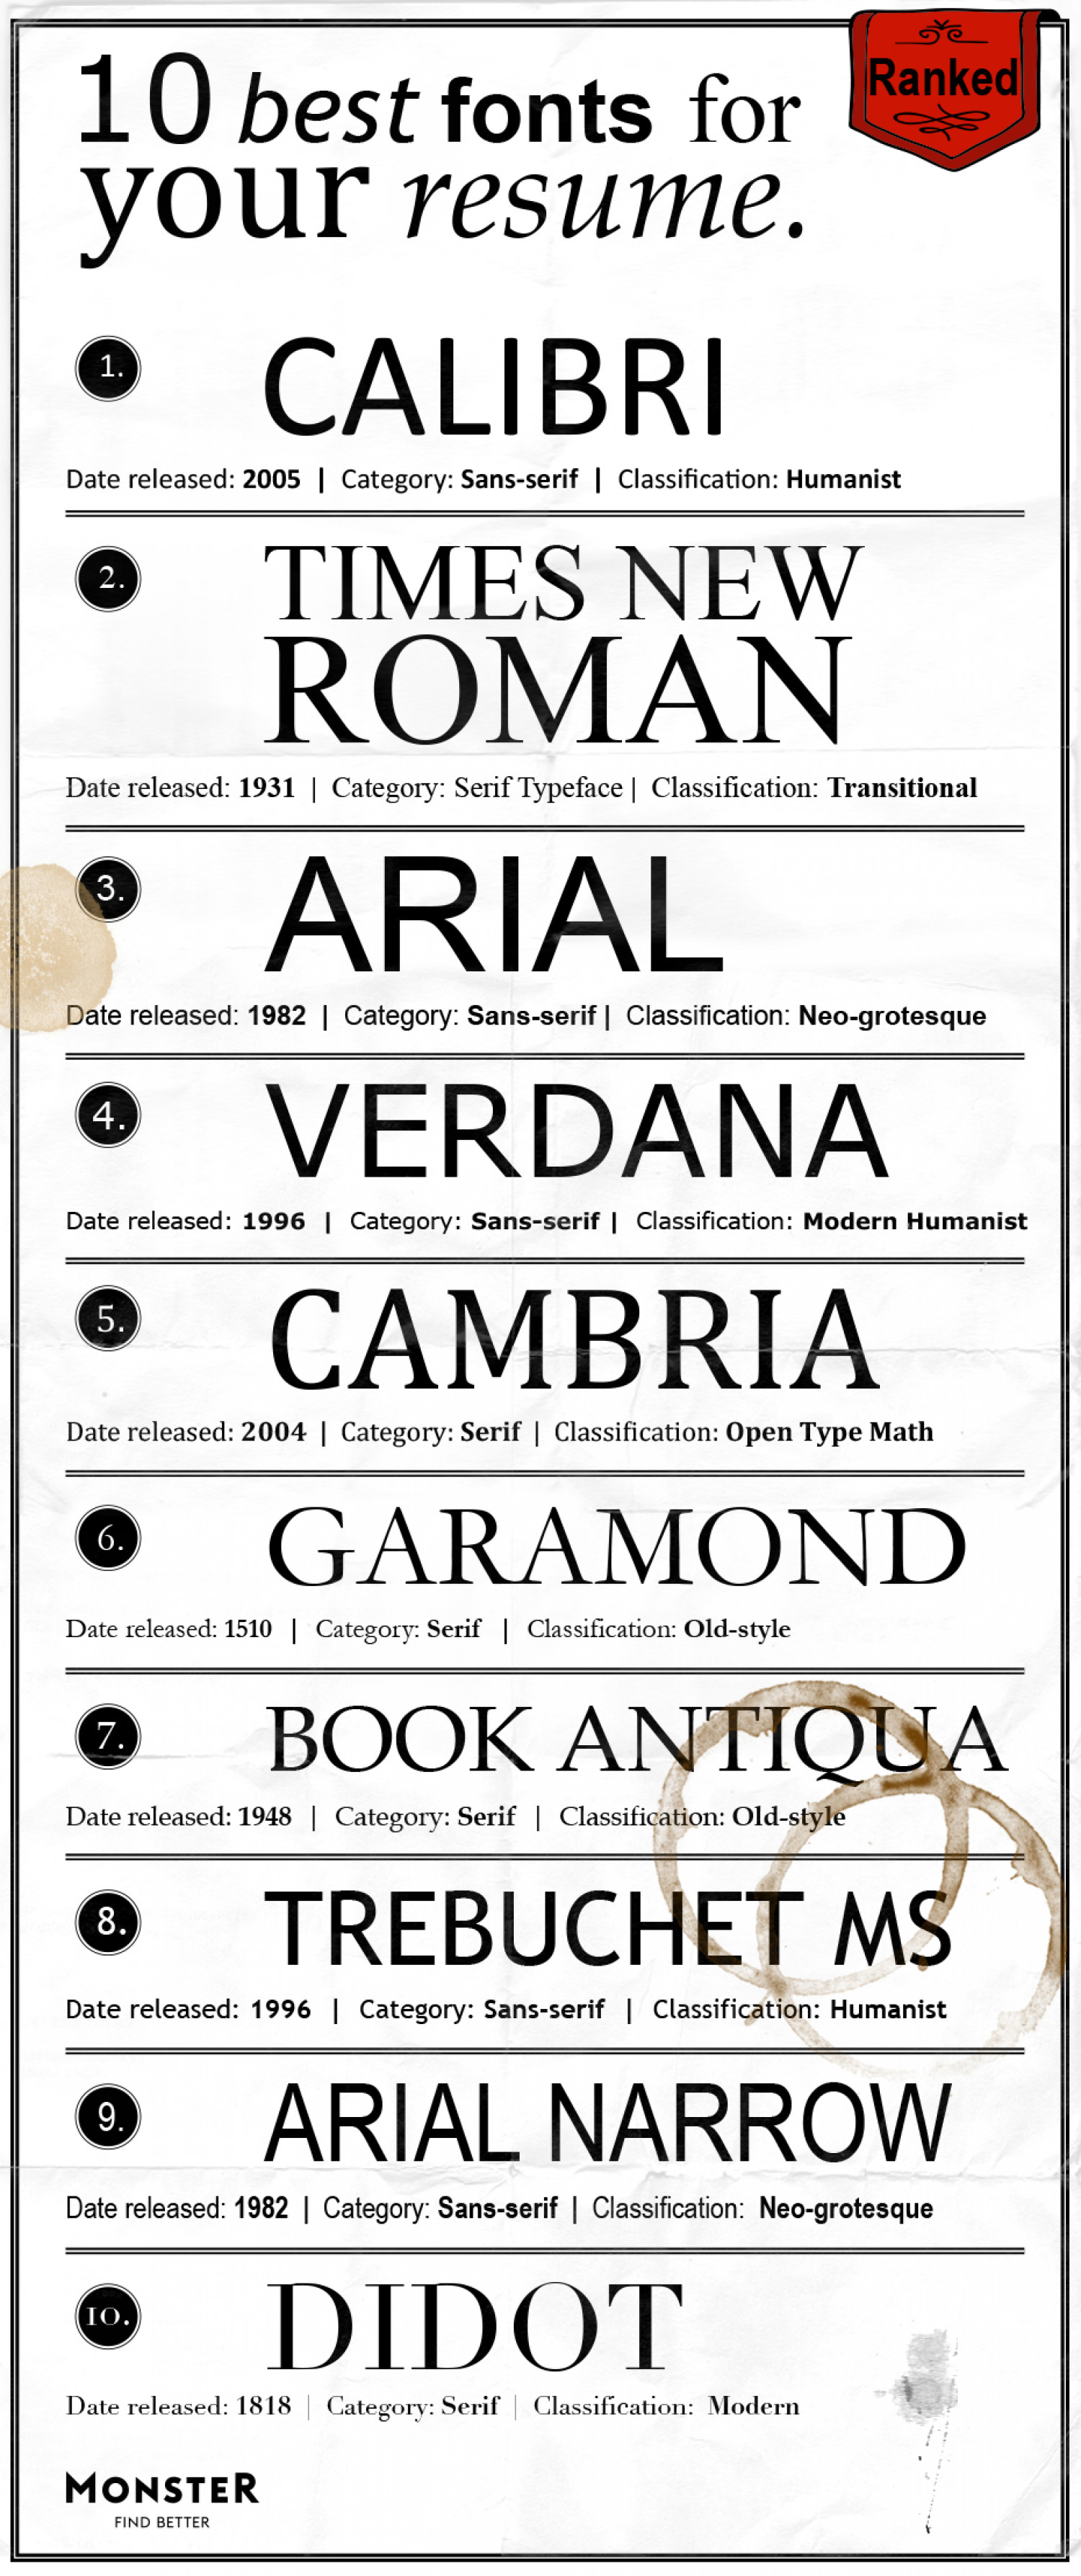 Best Fonts Resume The Best Fonts For Your Resume Ranked Visual Ly